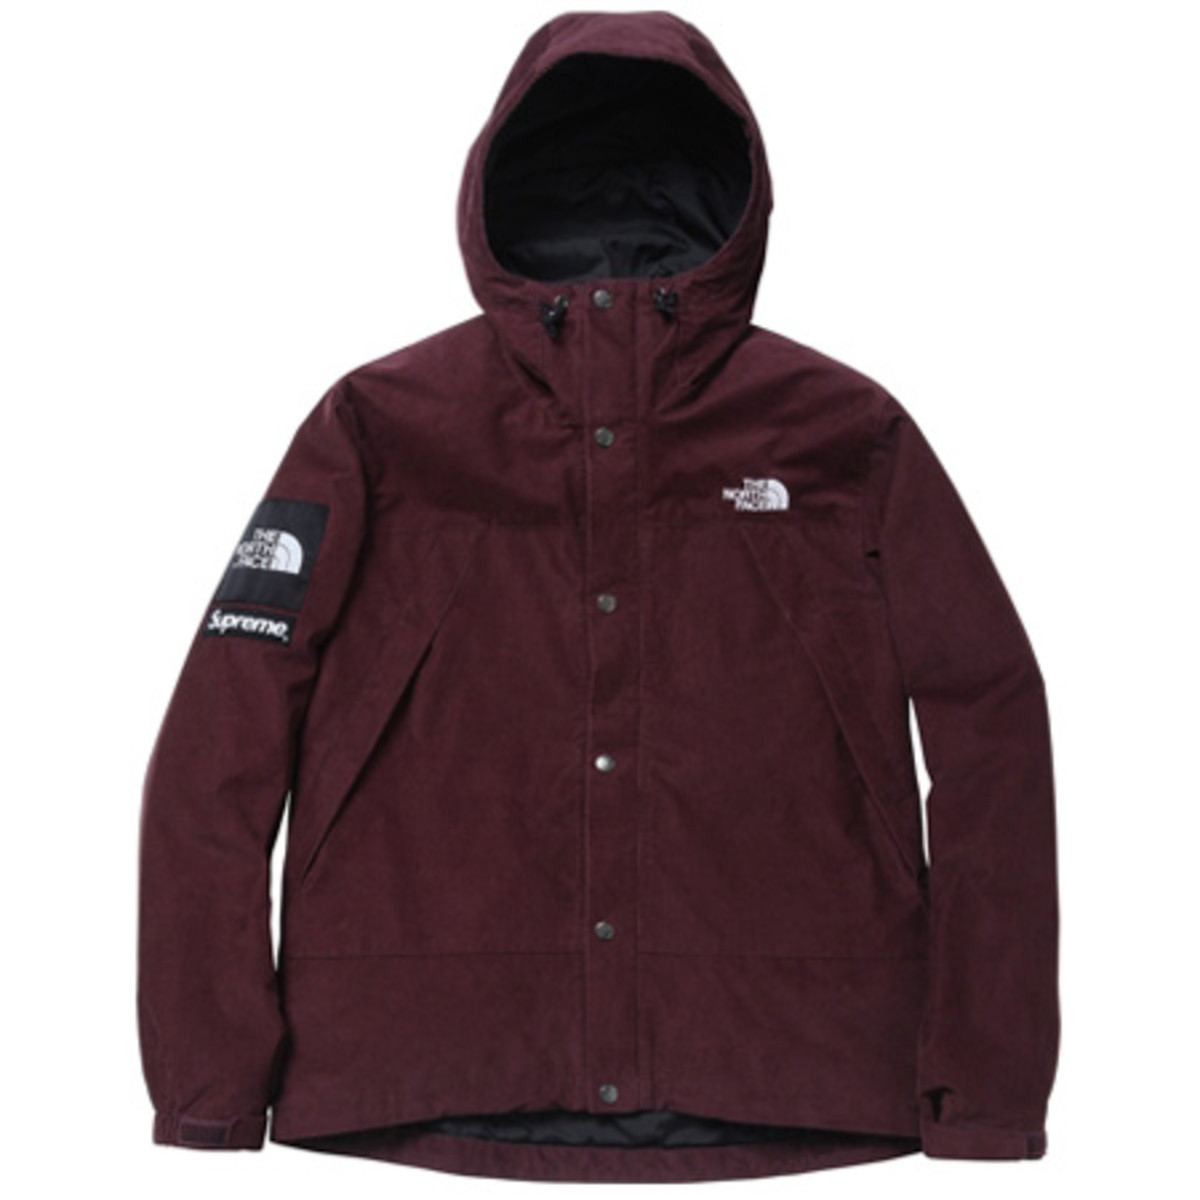 Supreme X The North Face Mountain Shell Jacket Fall